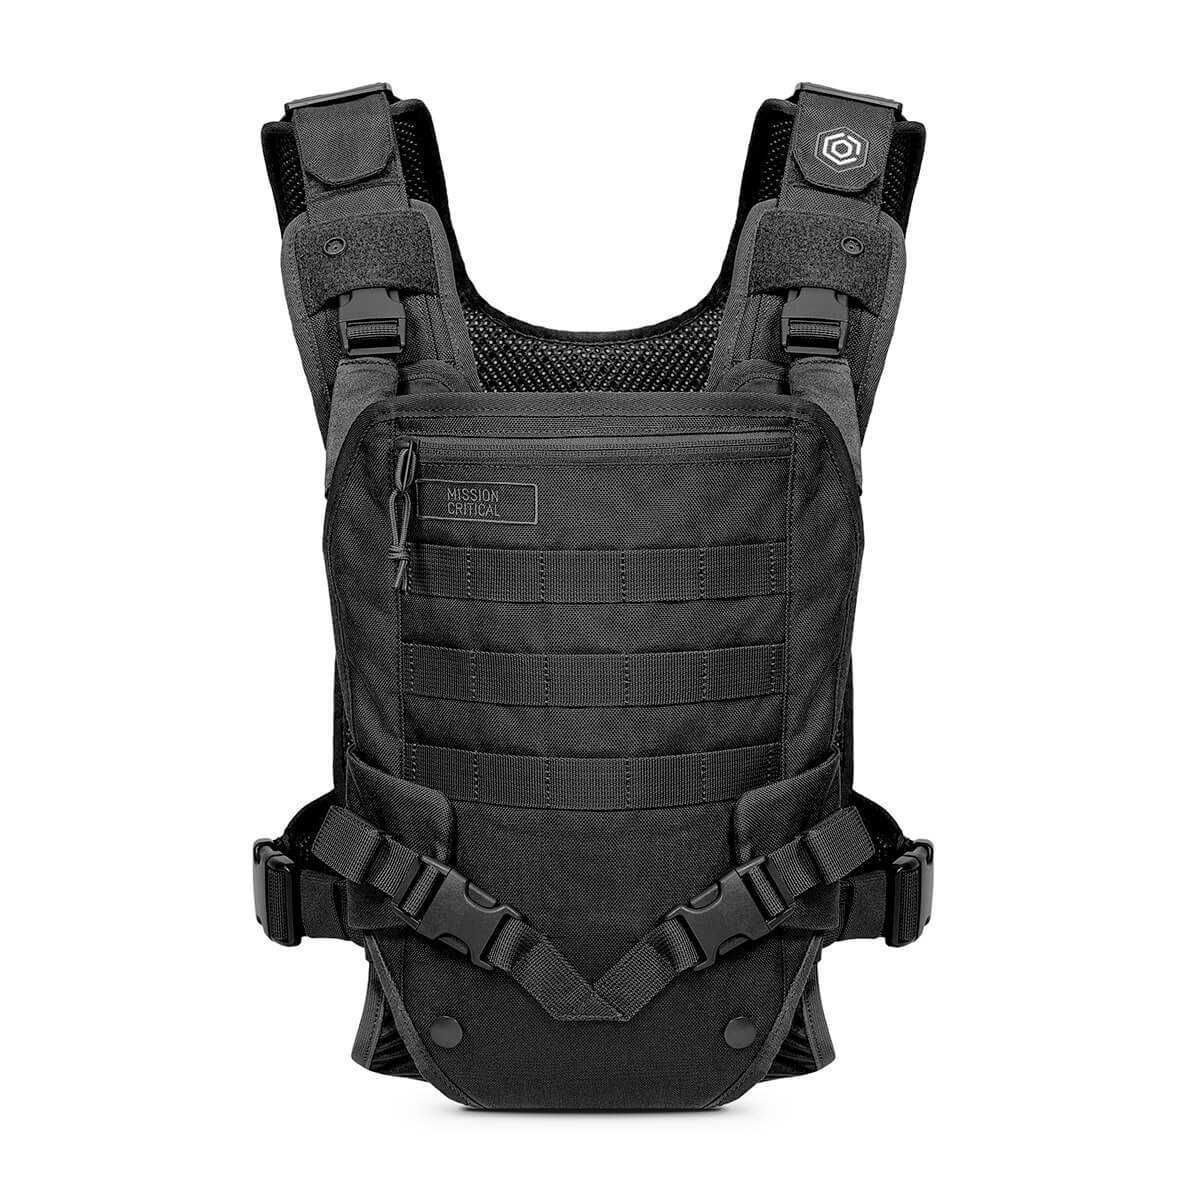 S.01 Action Baby Carrier - Balance Kit